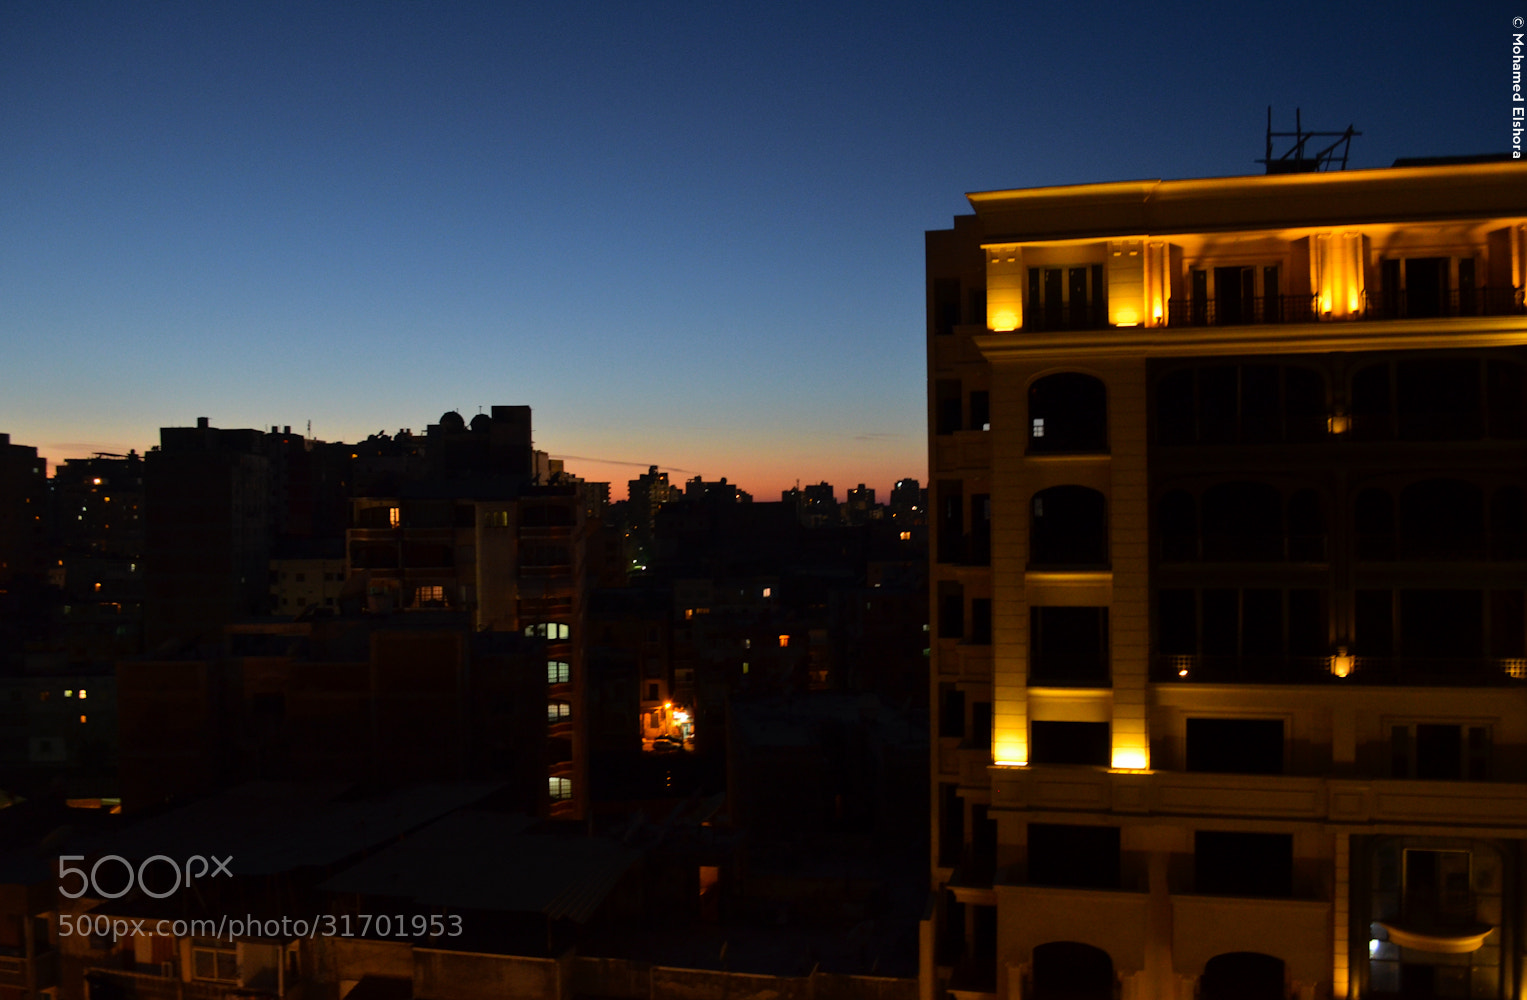 Photograph late sun set by Mohamed Elshora on 500px